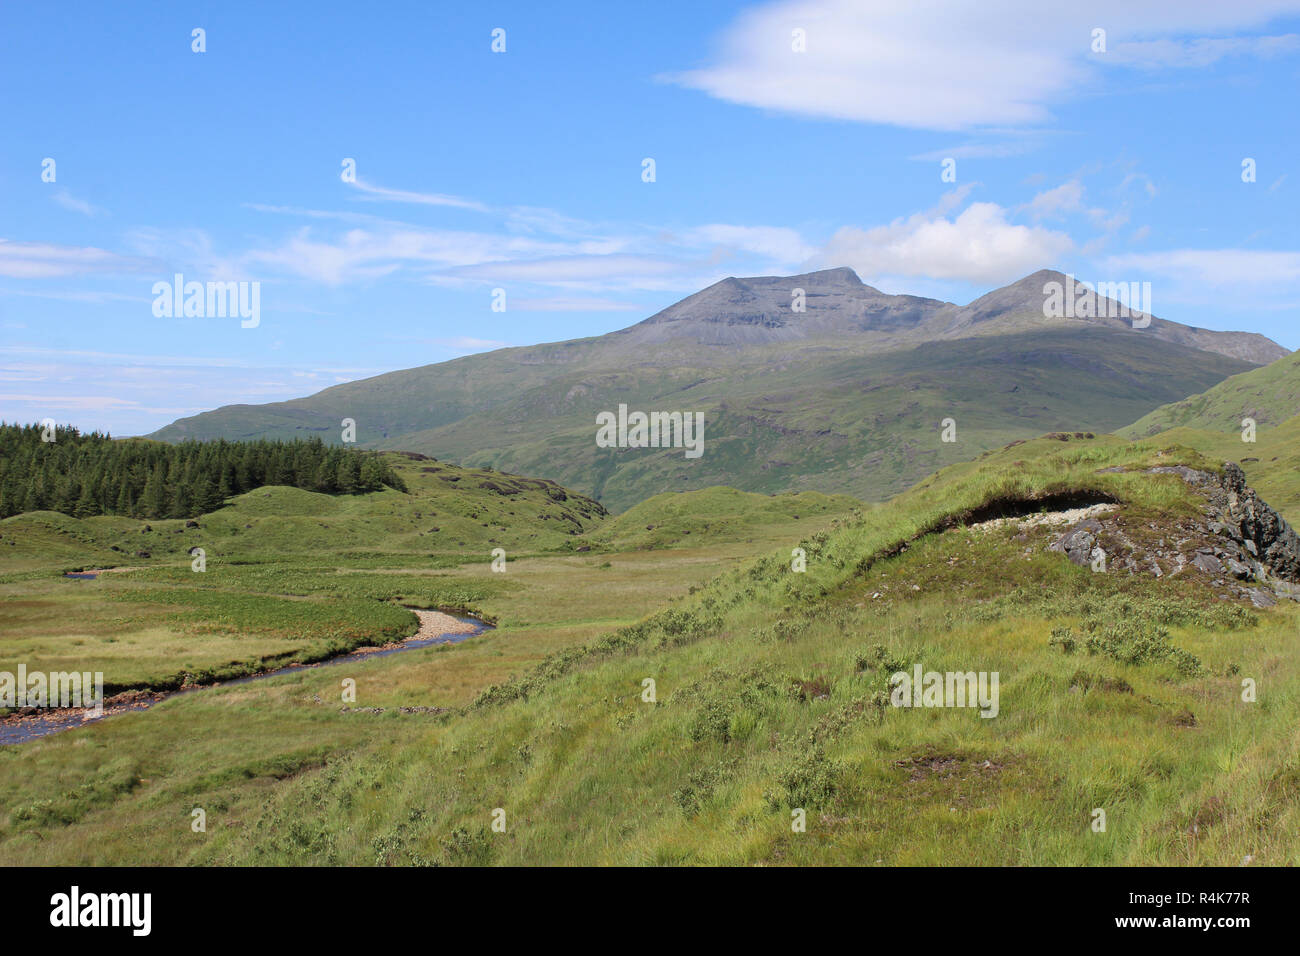 Scenic summer view of Ben More mountain from Glen More, on the picturesque island of Mull in Scotland. - Stock Image